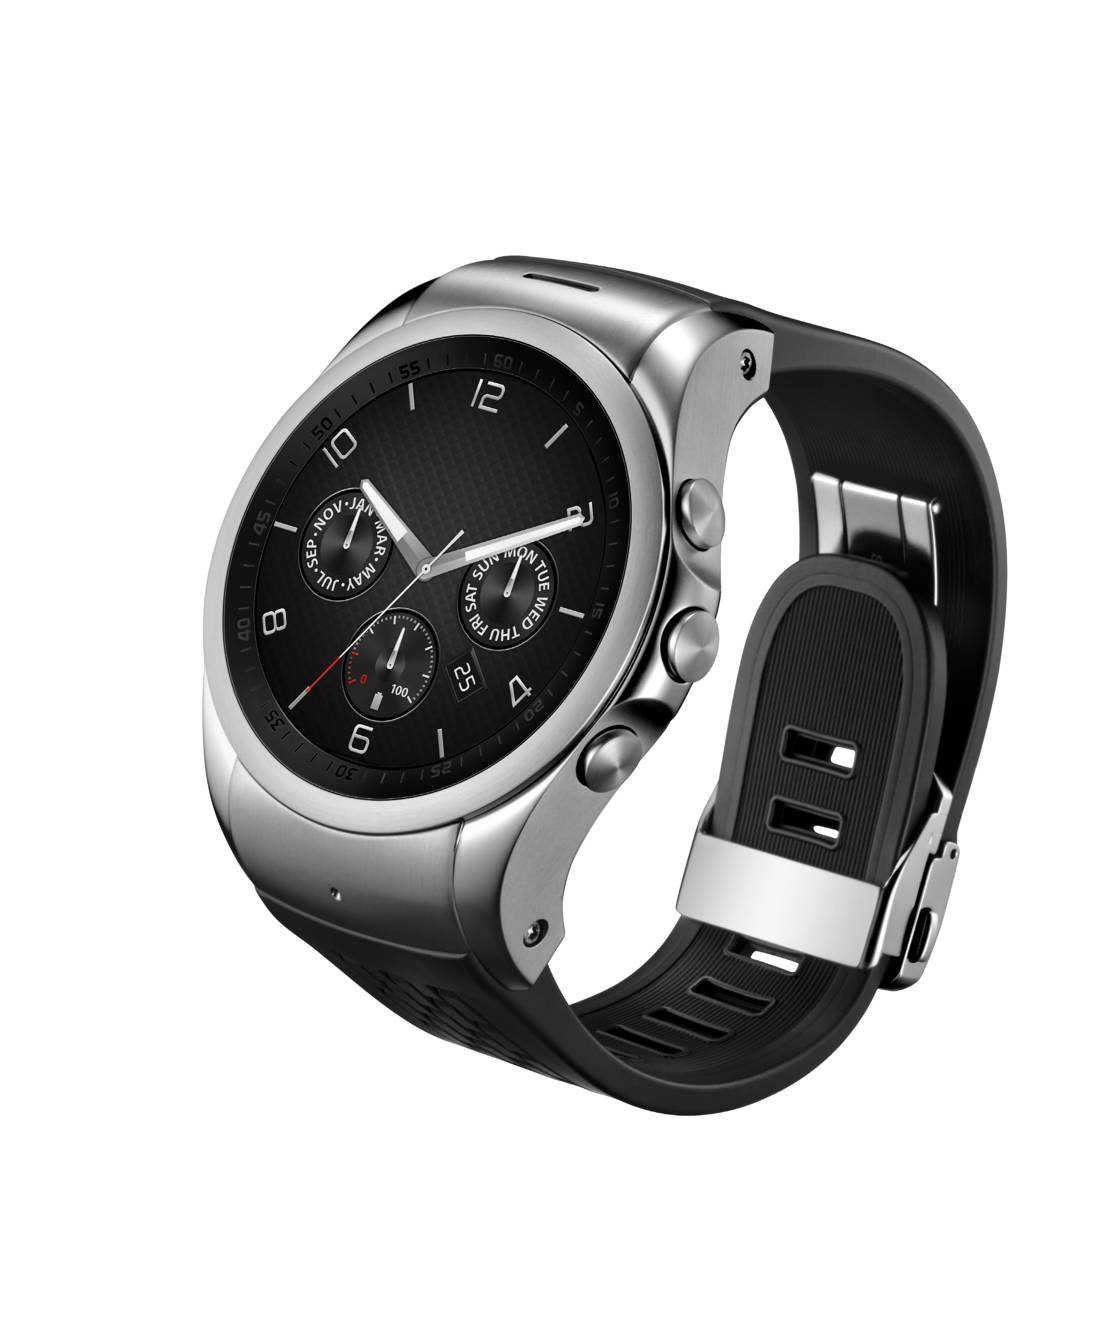 LG Watch Urbane disponibile a 349€ nel Google Store ...